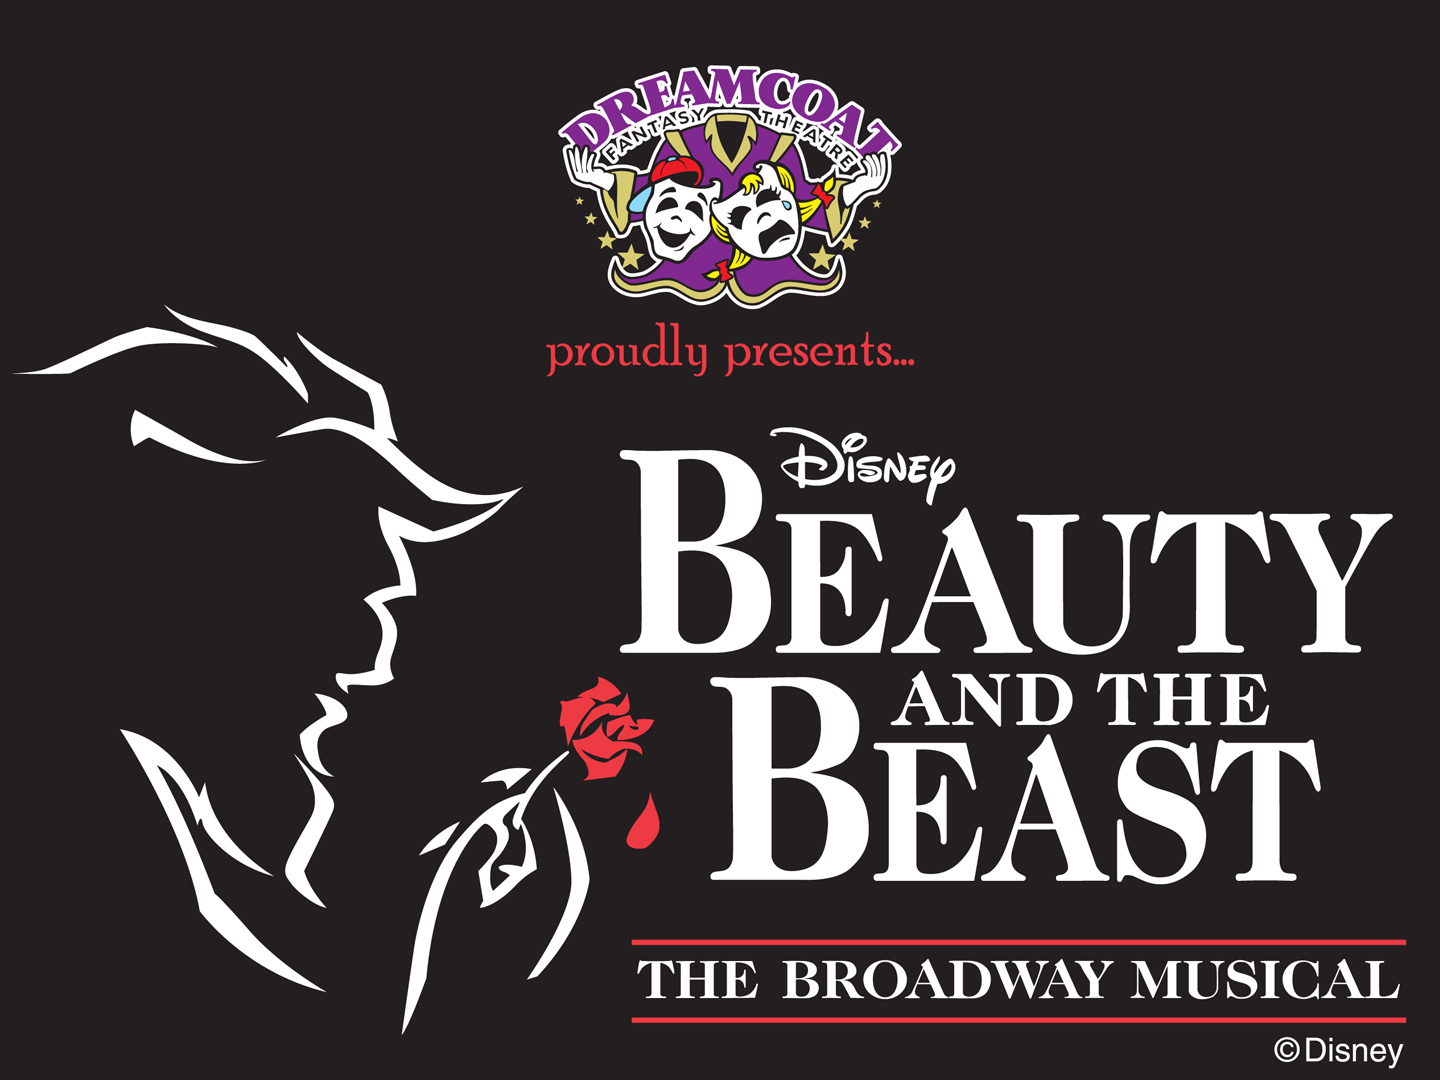 Dreamcoat presents Beauty and the Beast